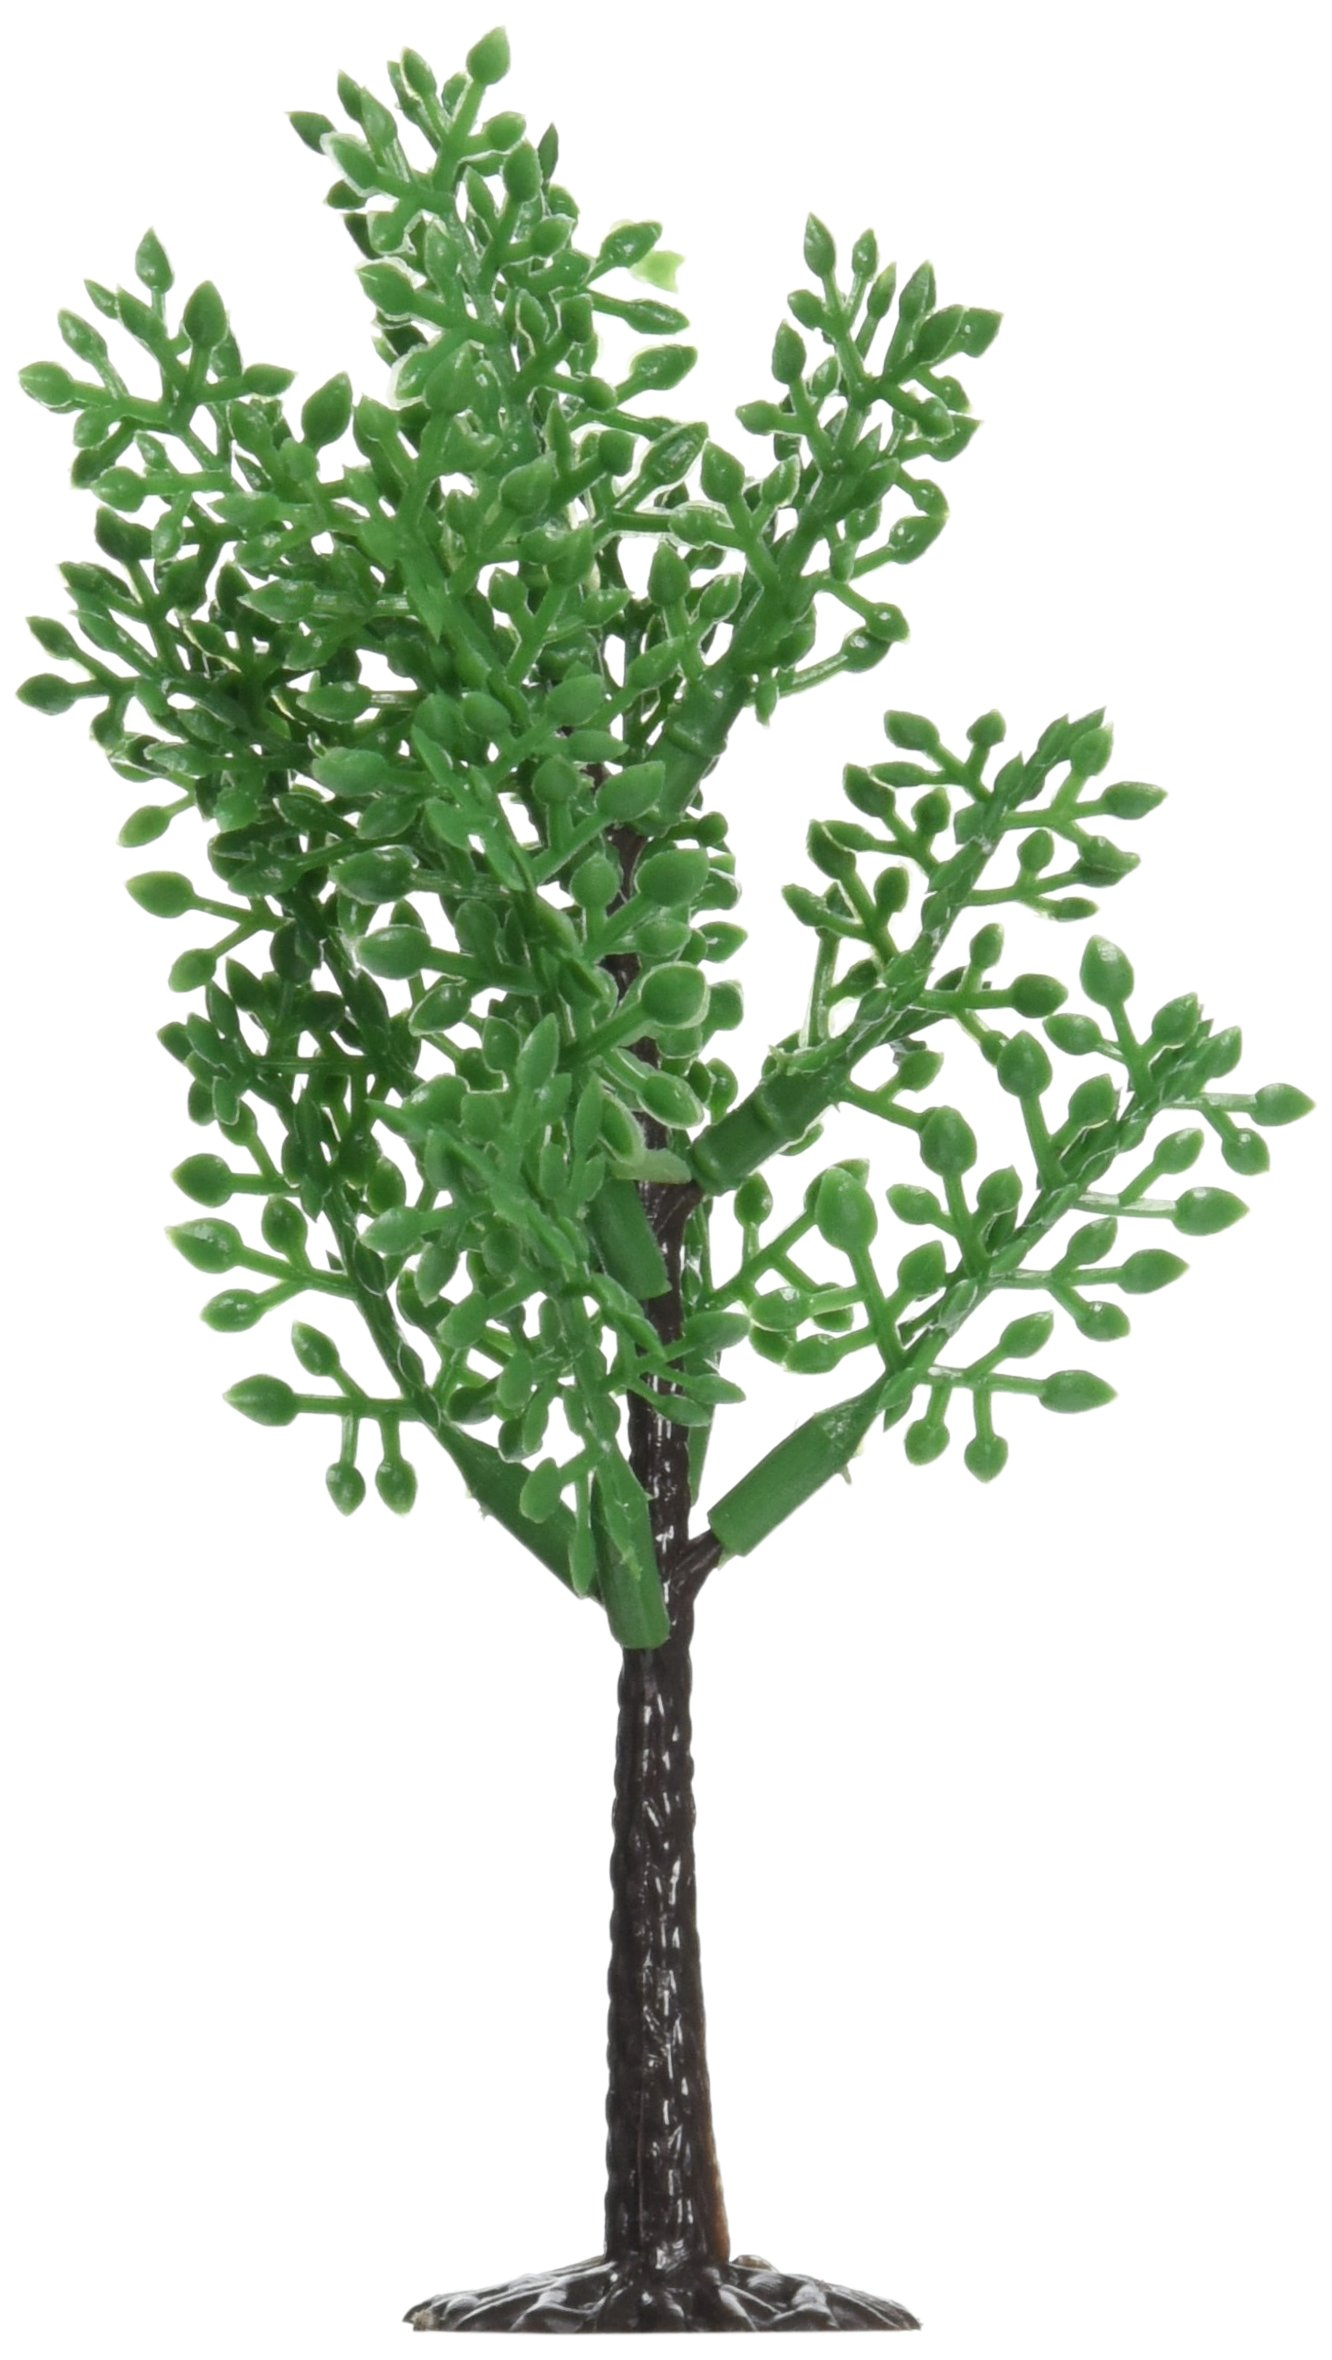 Oasis Supply 12-Piece Branch Tree with Stand for Cake Decorating and Sceneries, 4-Inch